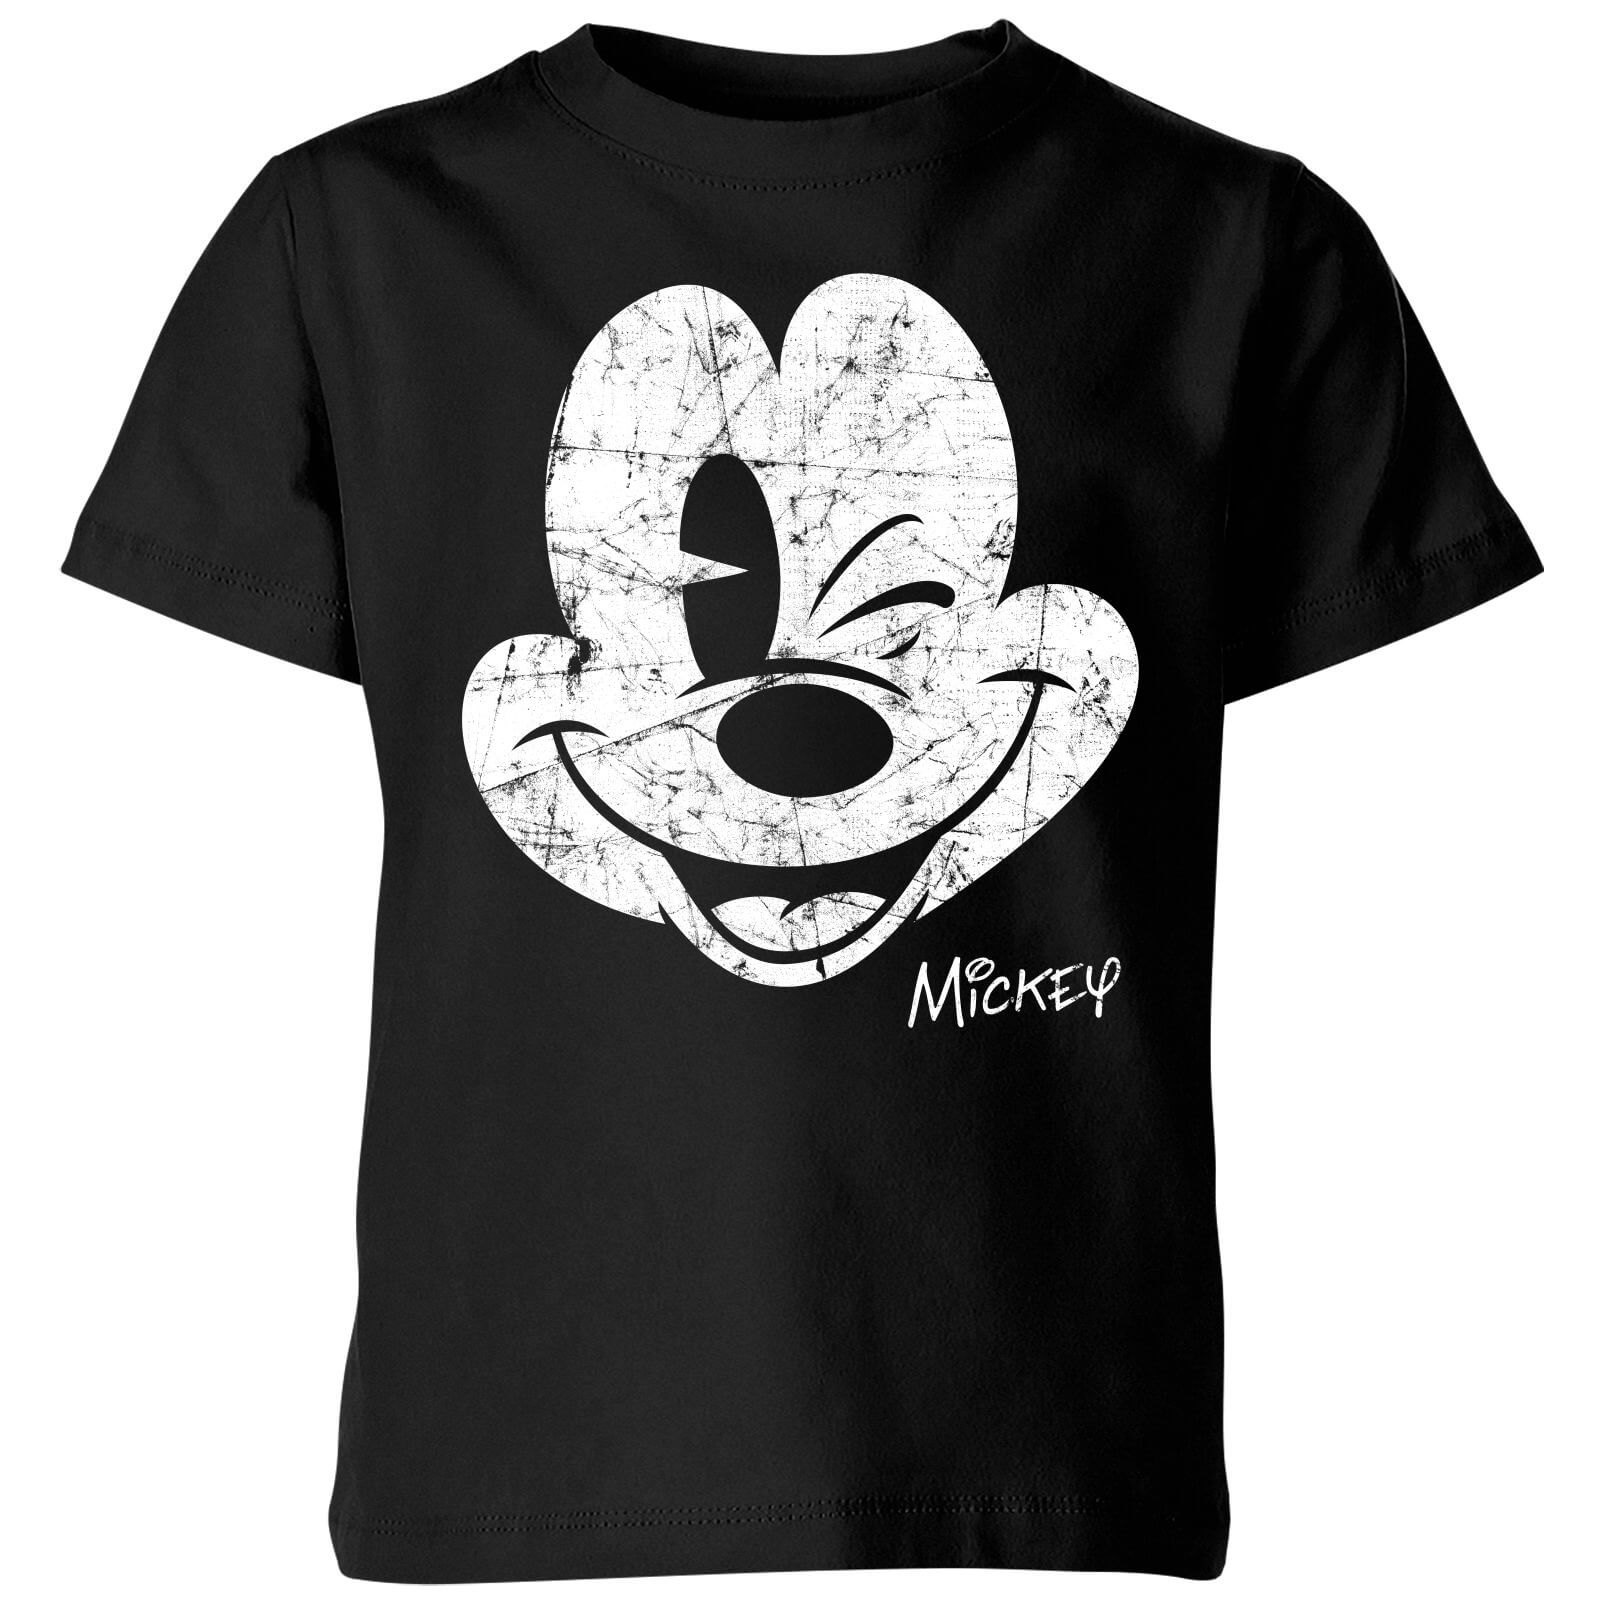 df5ec15d2 Disney Worn Face Kids  T-Shirt - Black Clothing